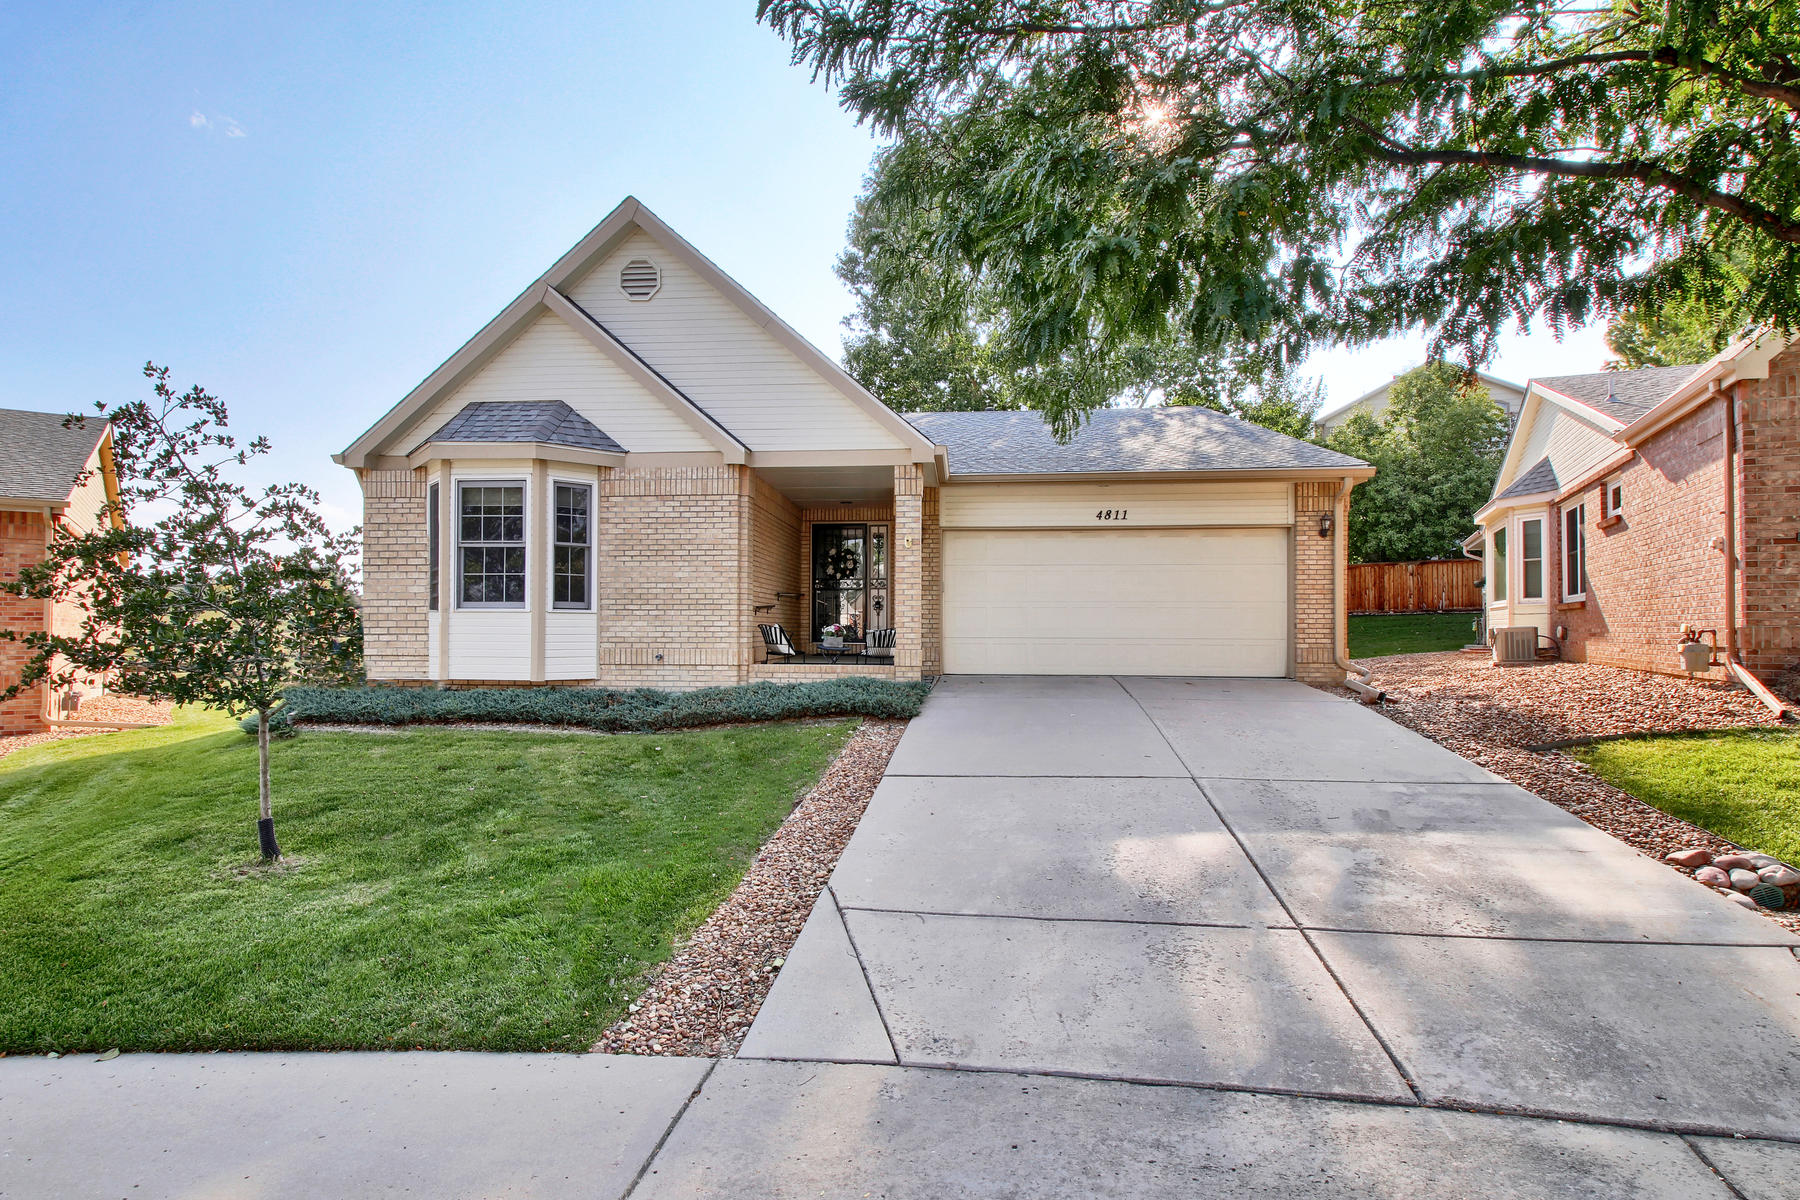 Single Family Home for Active at Beautiful, completely remodeled Ranch Patio Home. 4811 Greenwich Dr Highlands Ranch, Colorado 80130 United States